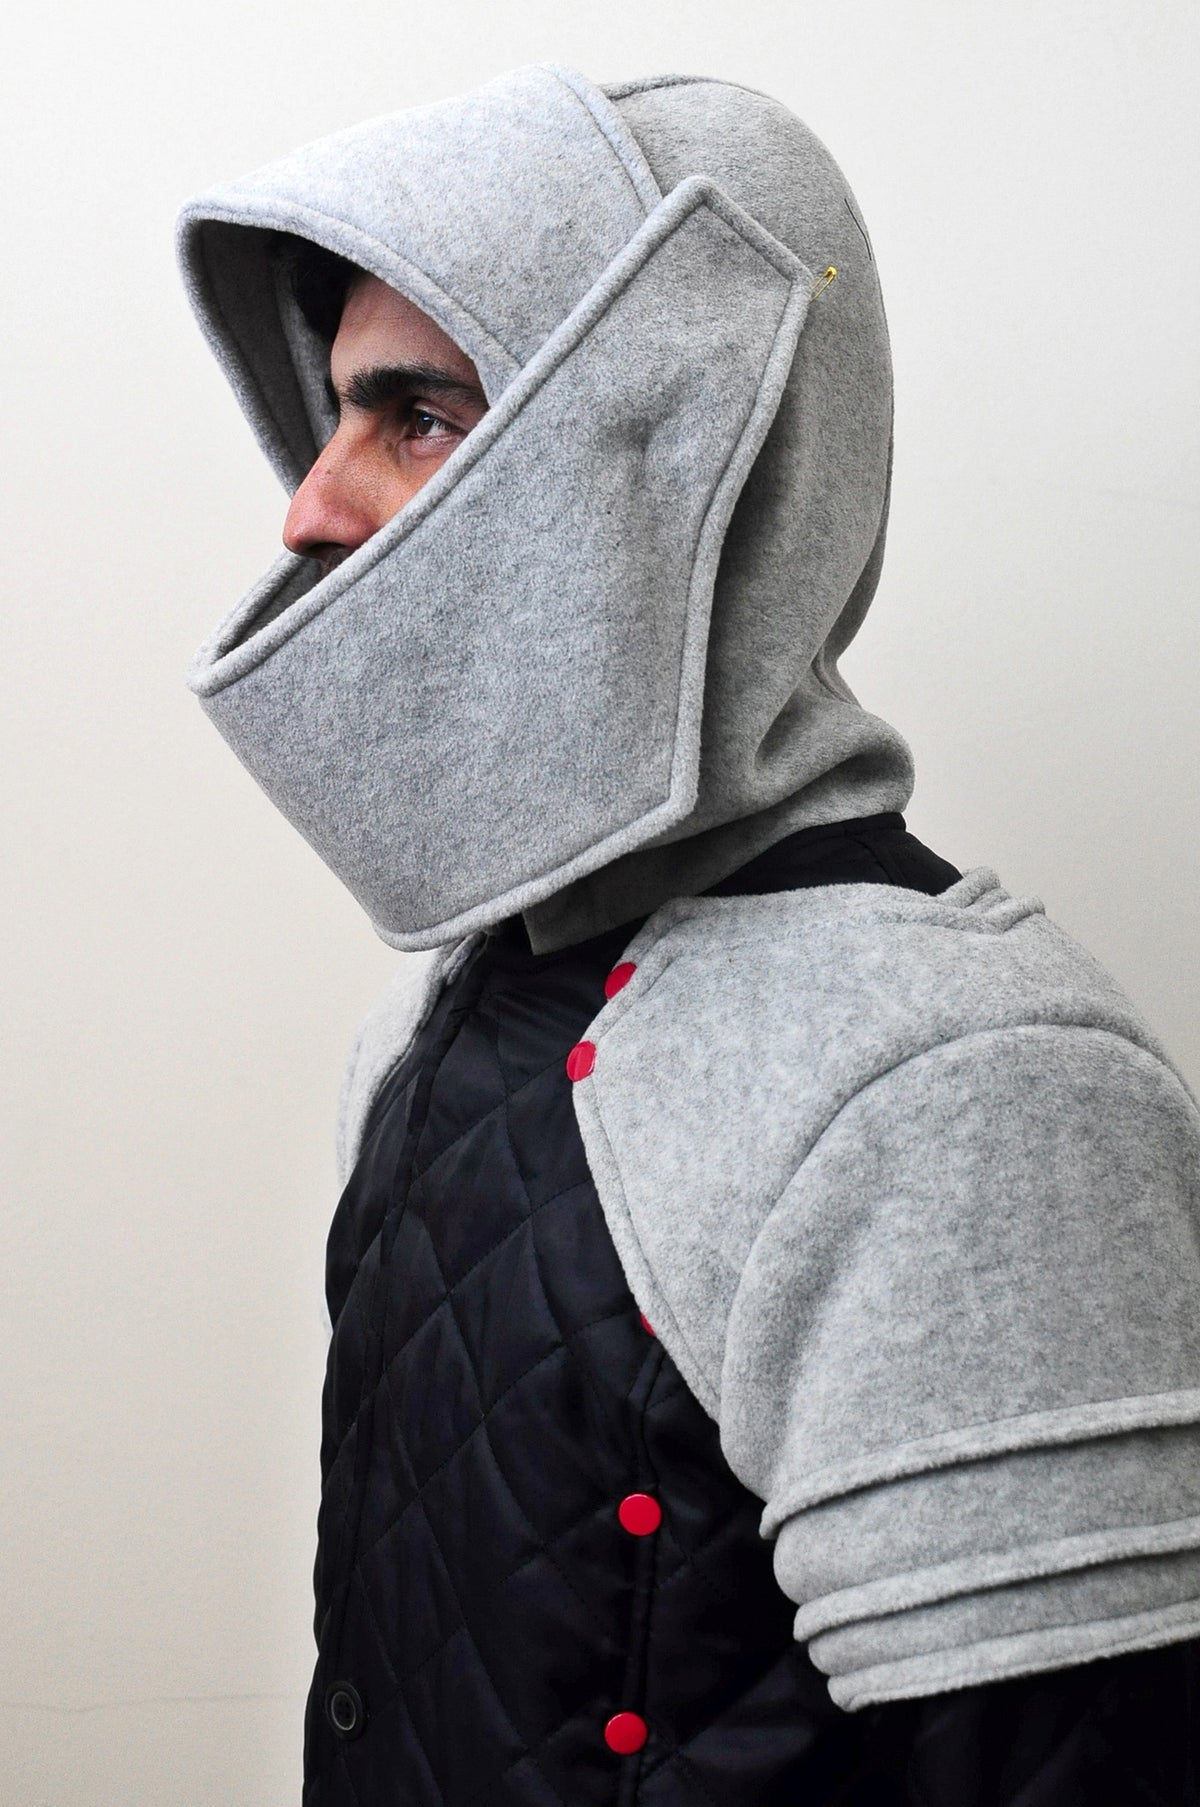 Duncan Armored Knight Hoodie Sweatshirt Polar Fleece Assassin's Creed JACKET